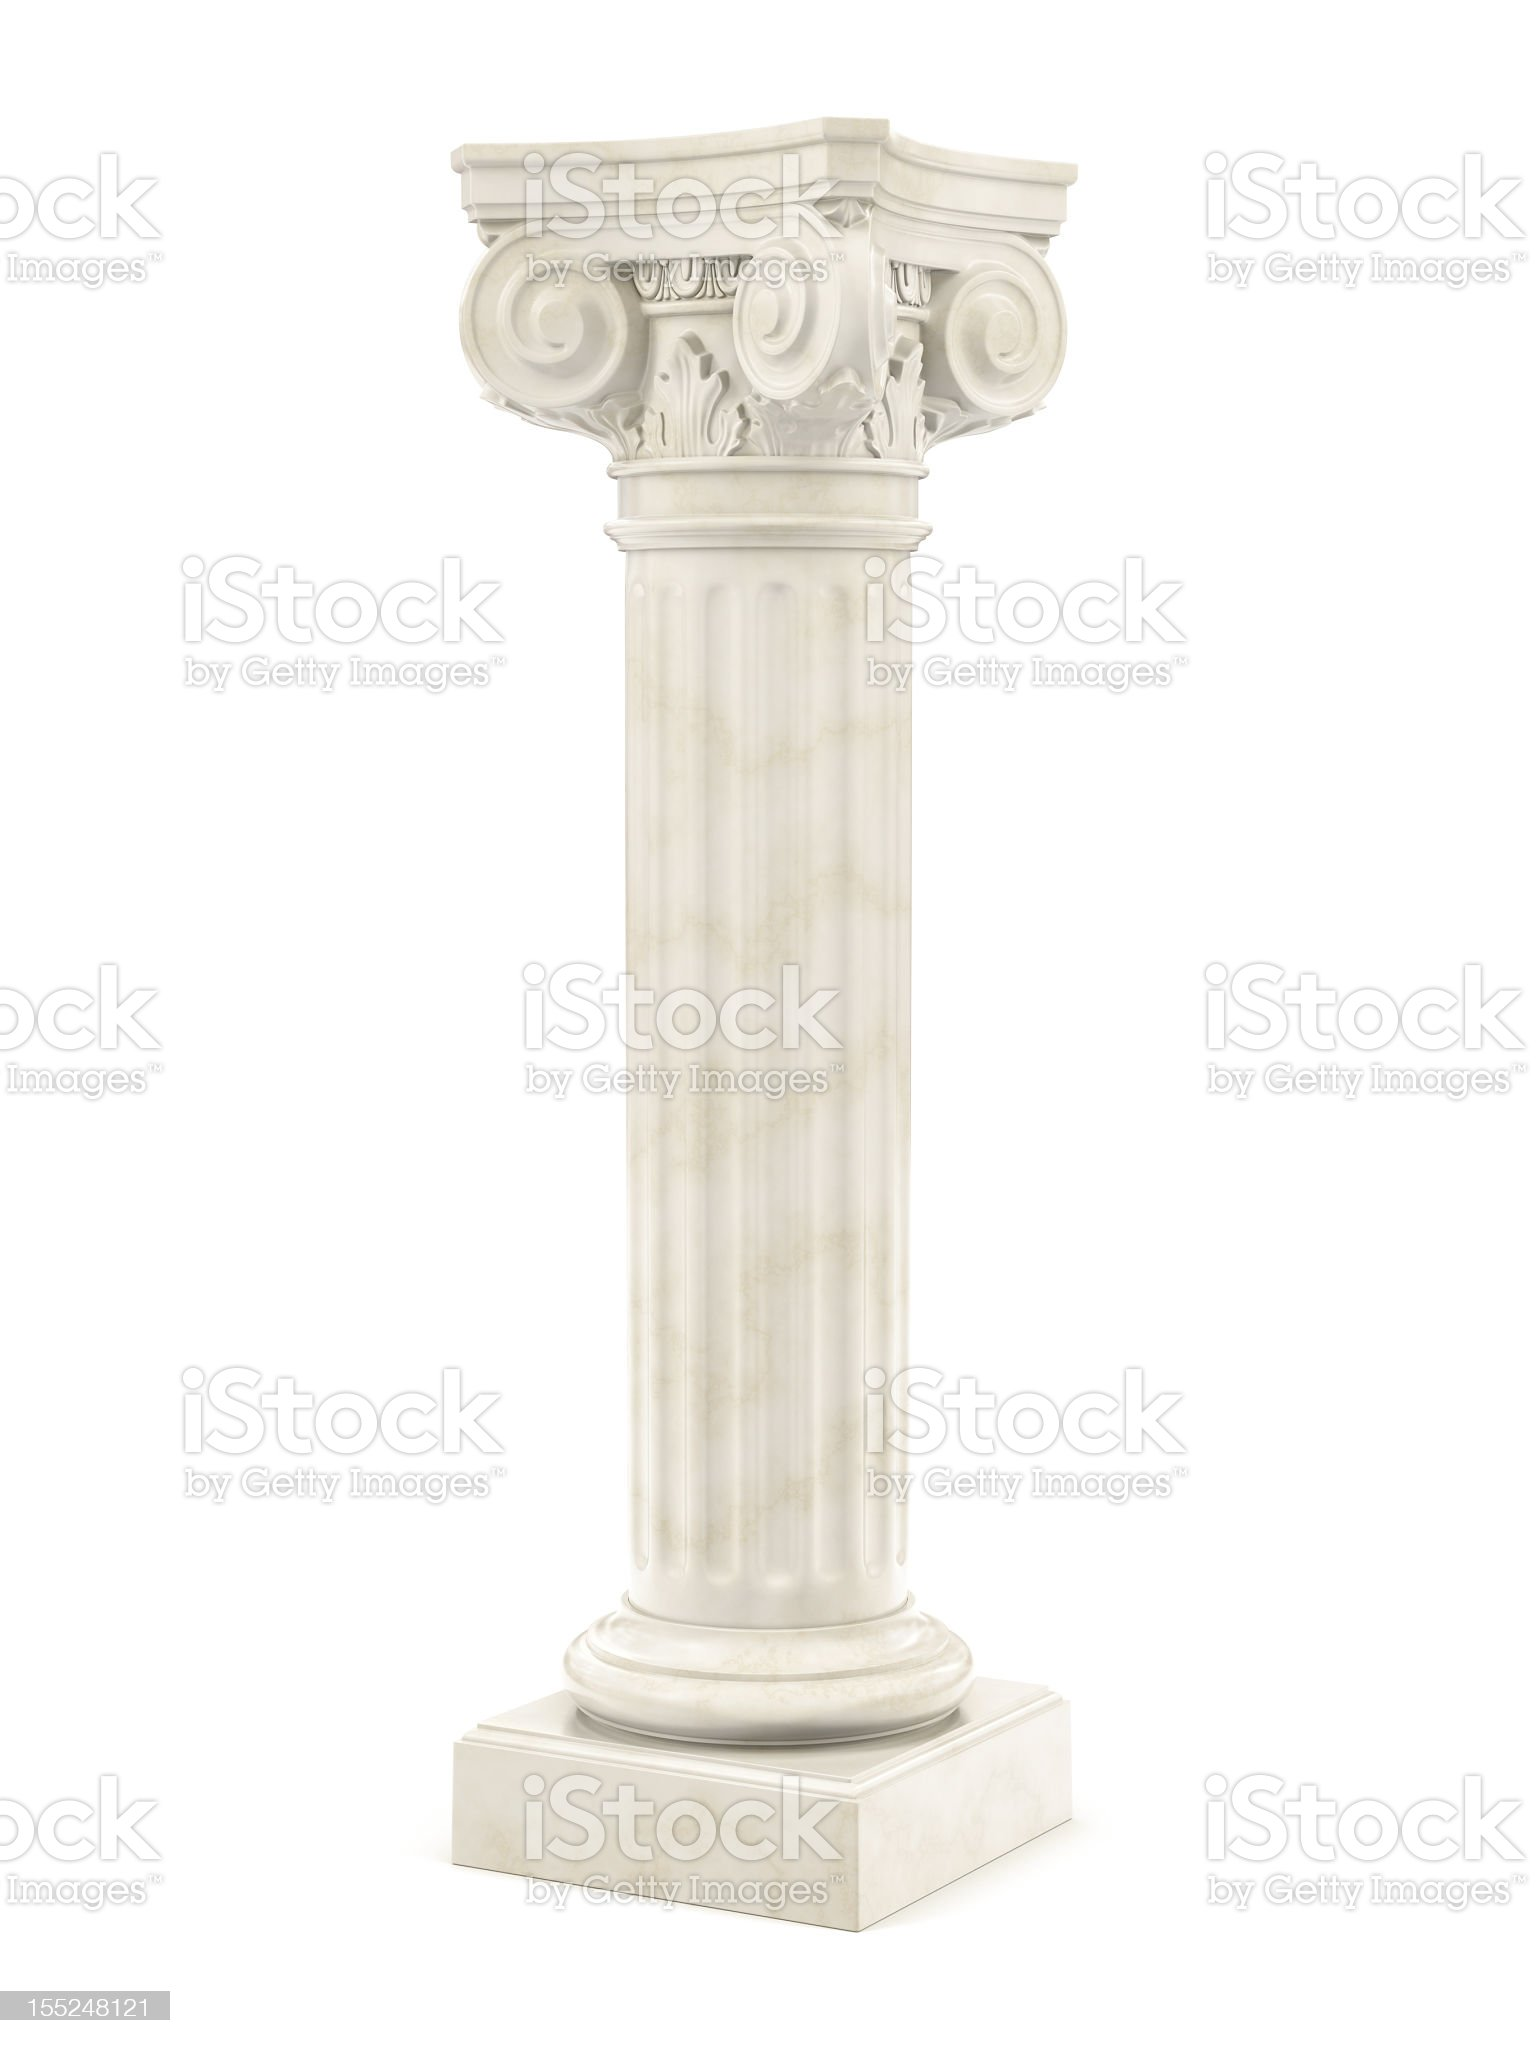 marble column isolated royalty-free stock photo